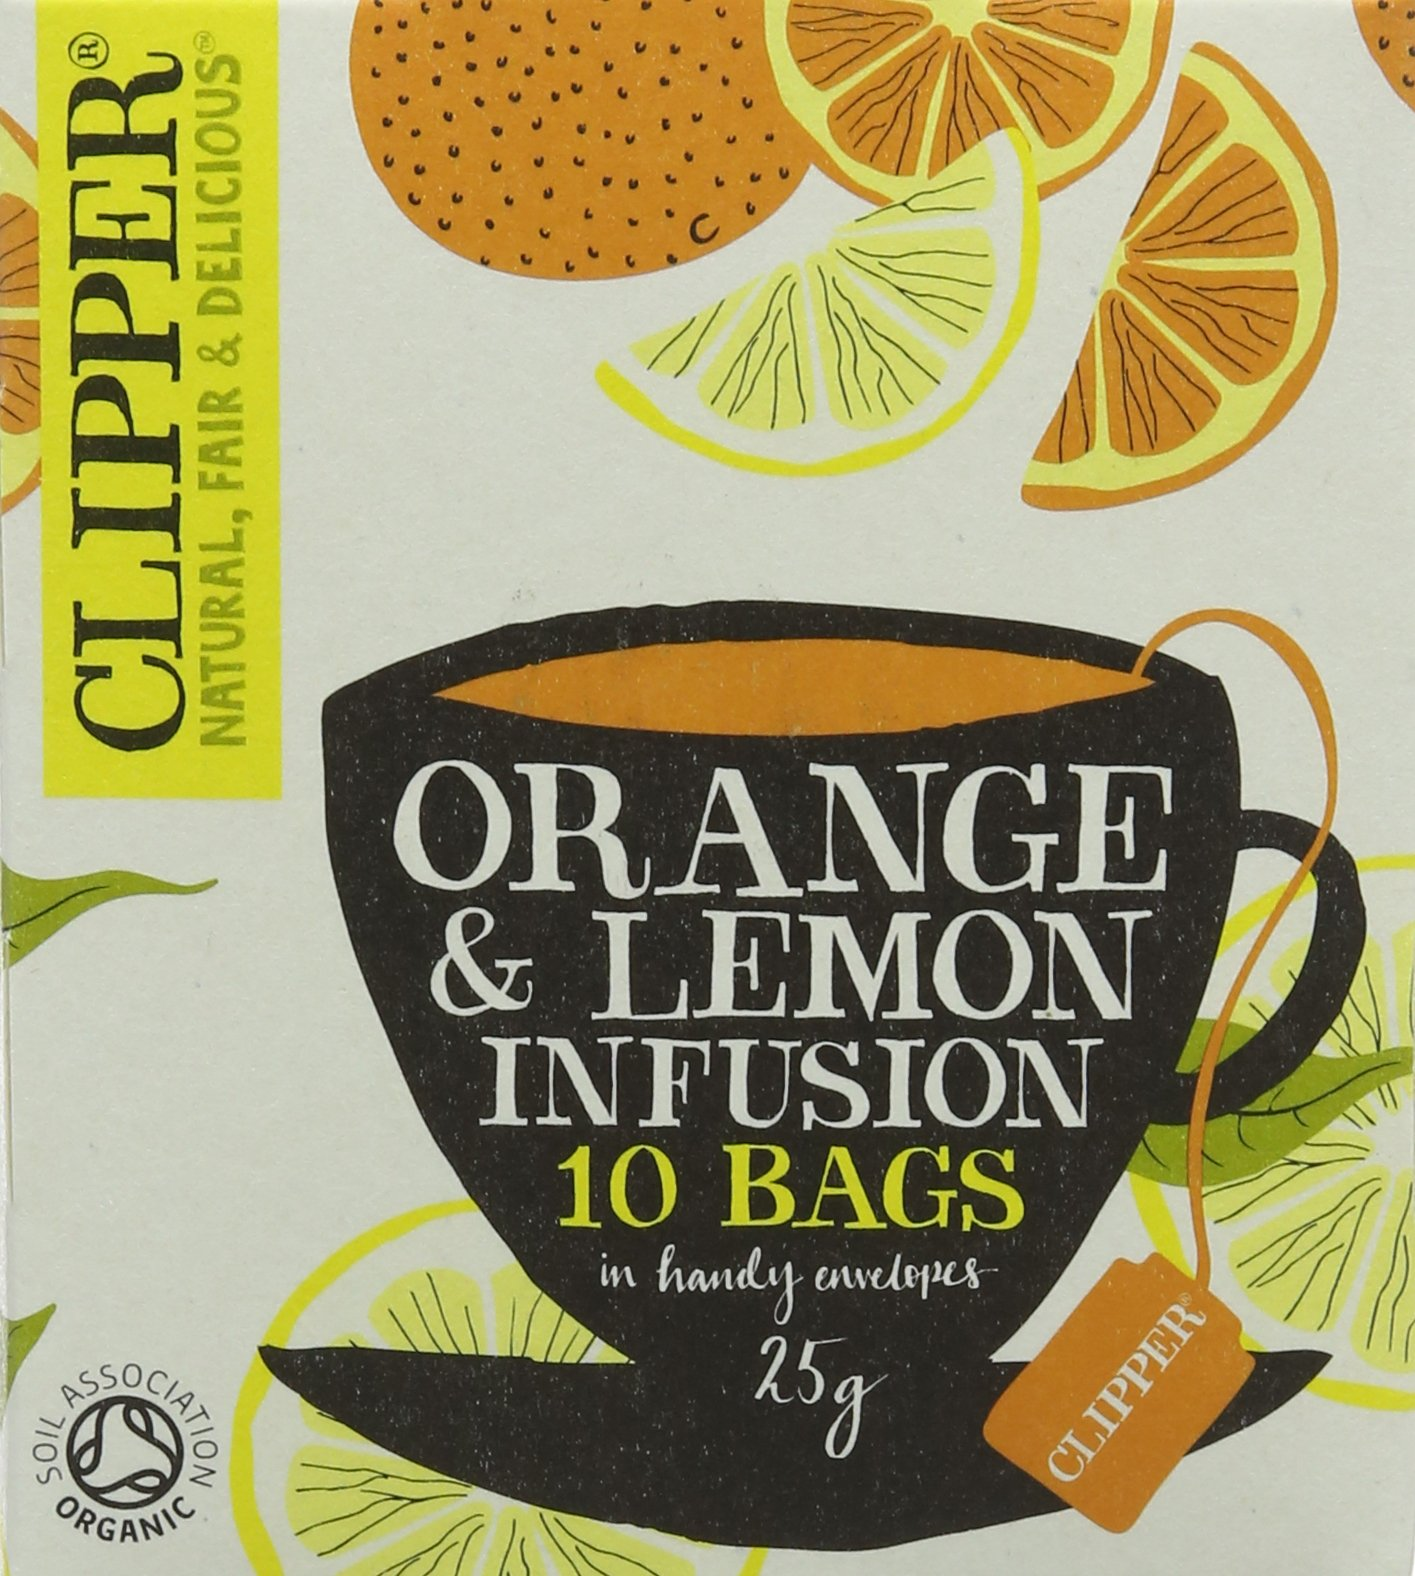 Clipper organic st clements tea bundle (soil association) (infusions) (st clements) (6 packs of 10 bags) (60 bags) (a floral, fruity tea with aromas of lemon, liquorice, orange, rosehip) (brews in 3-5 minutes)